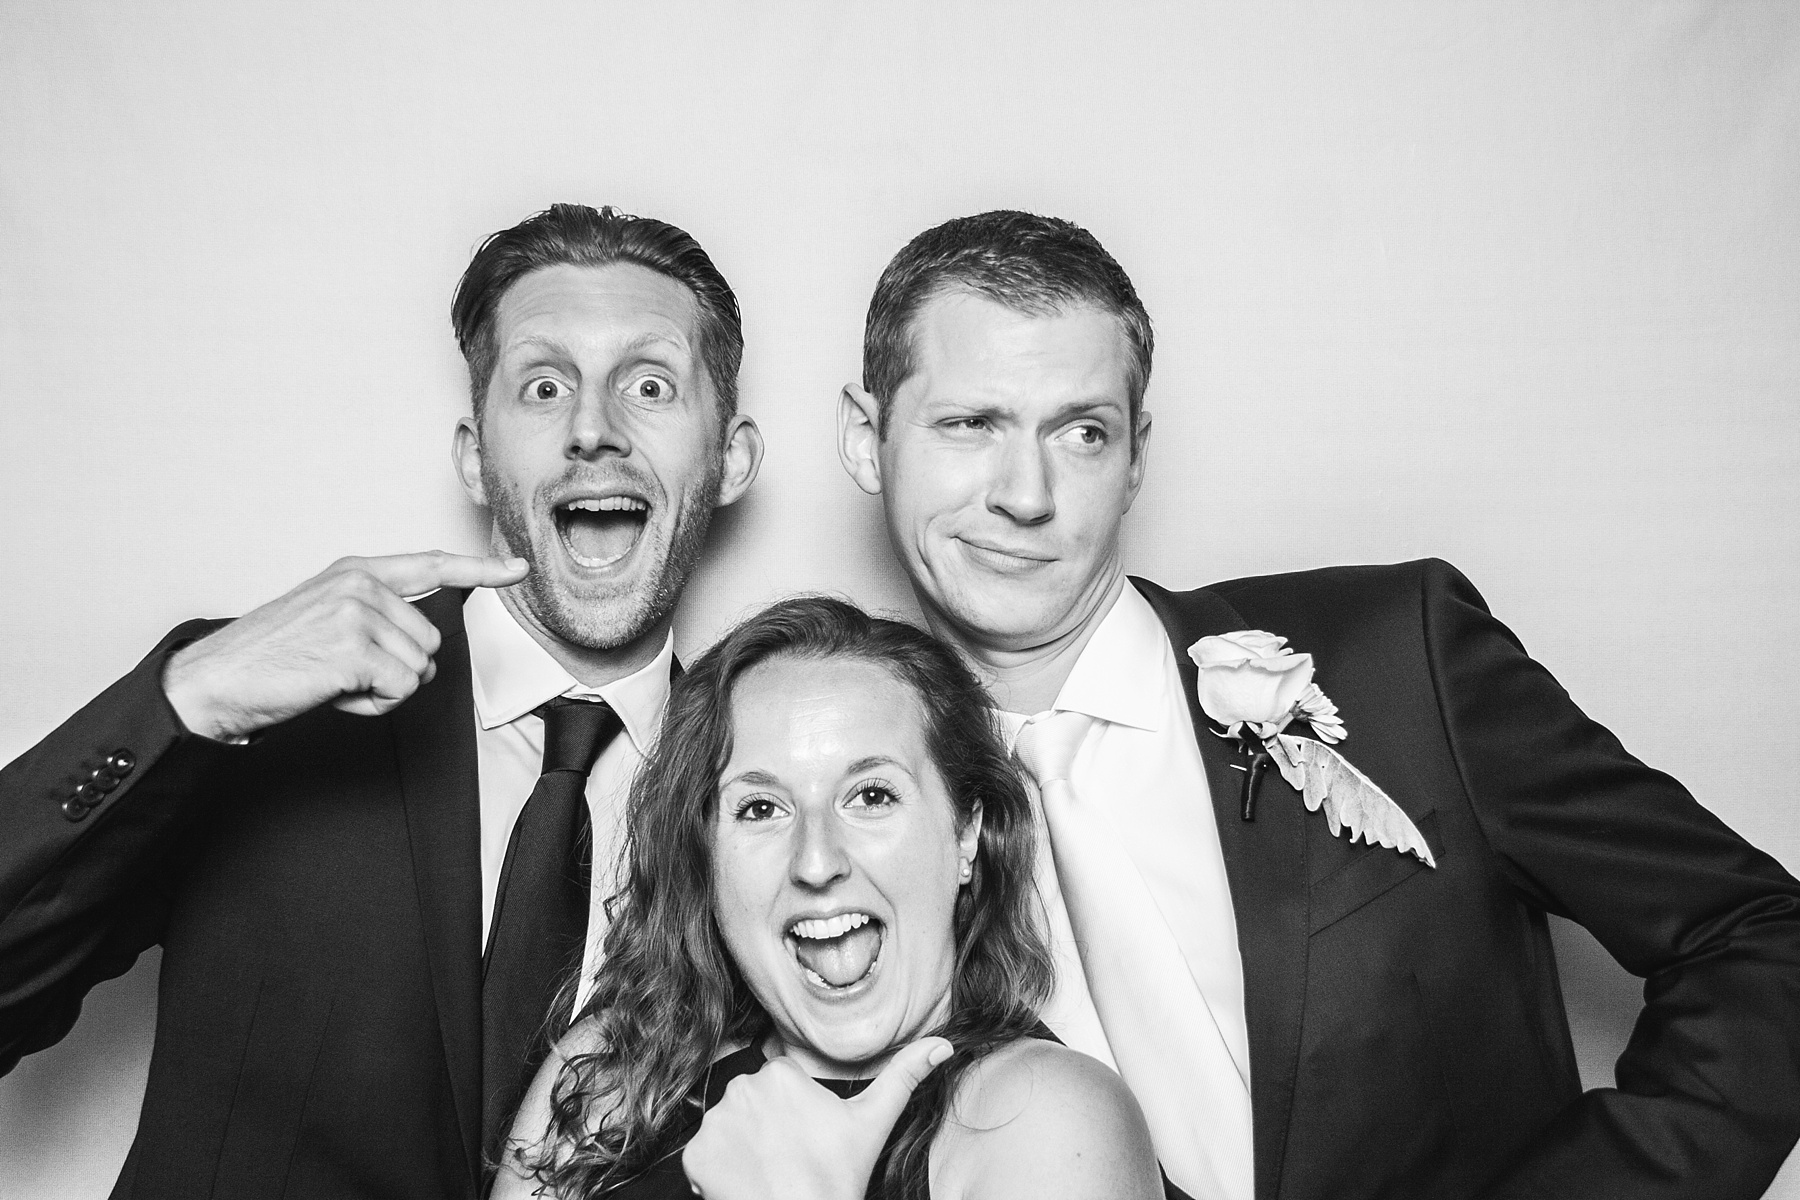 Fun Pictures of Wedding Guests 002.jpg